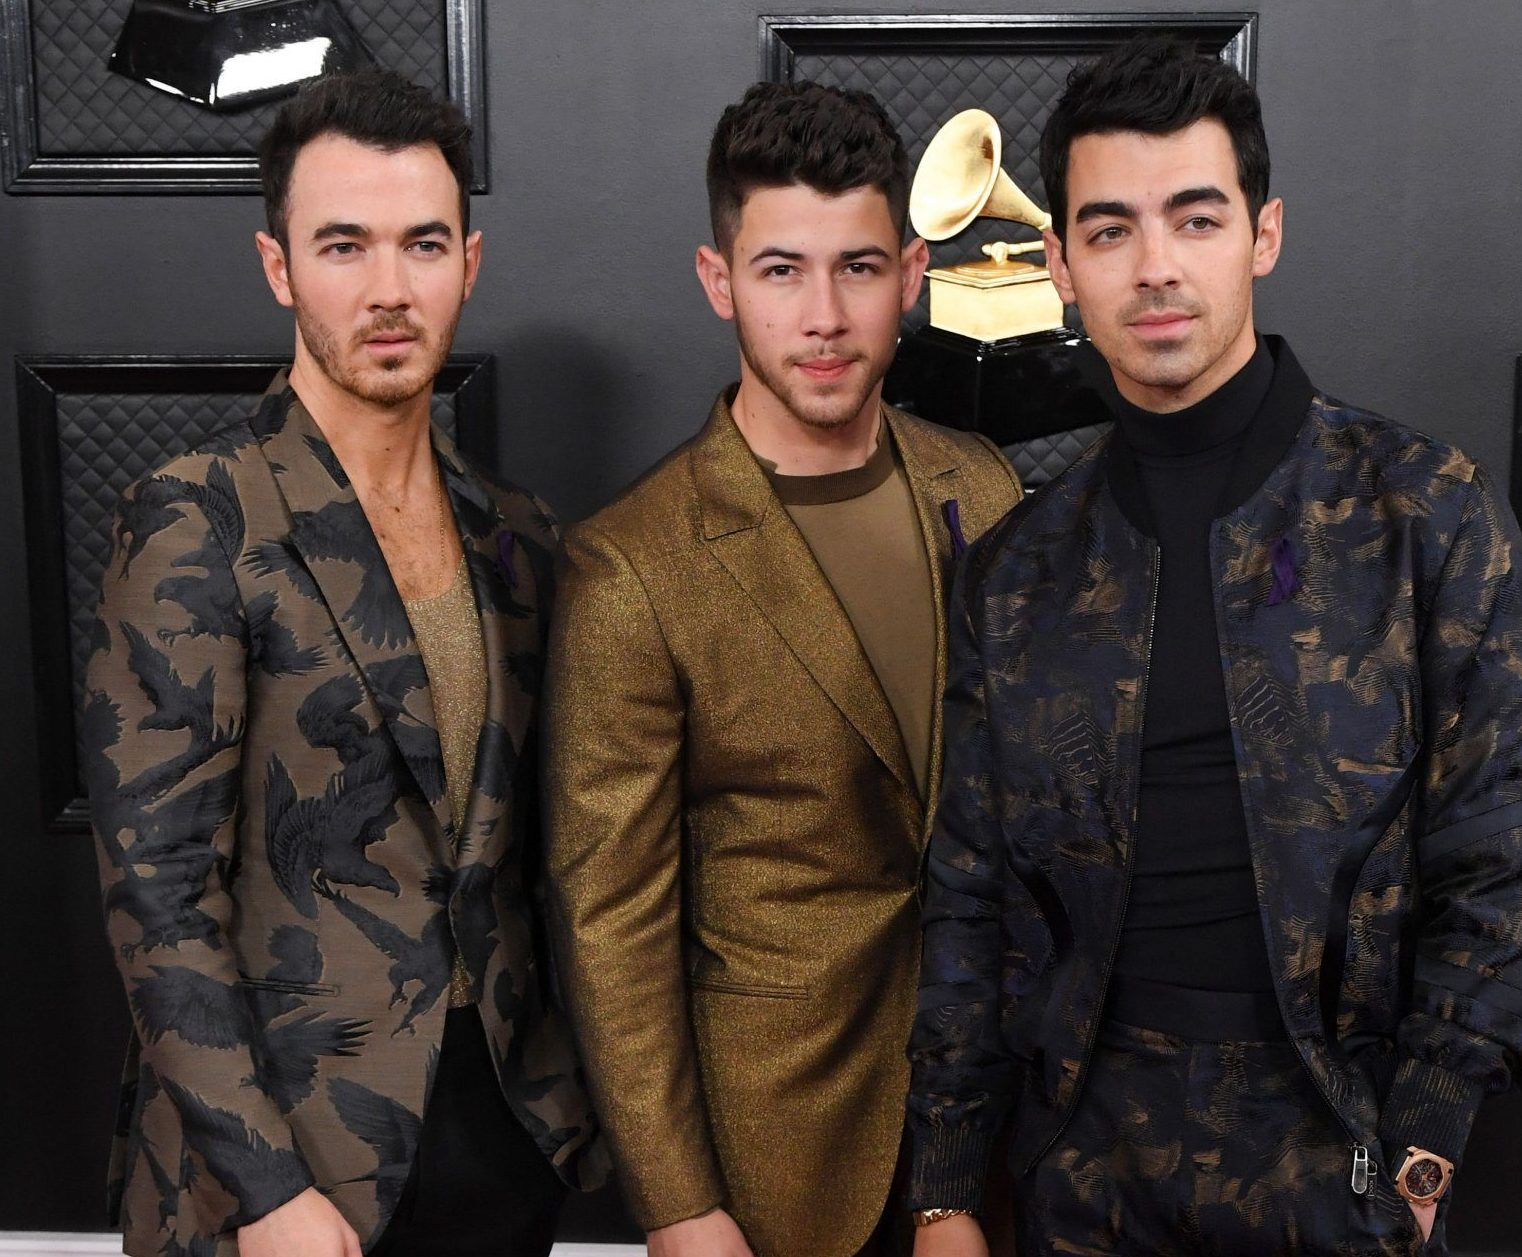 Jonas Brothers cancels Las Vegas residency amid growing concern over coronavirus